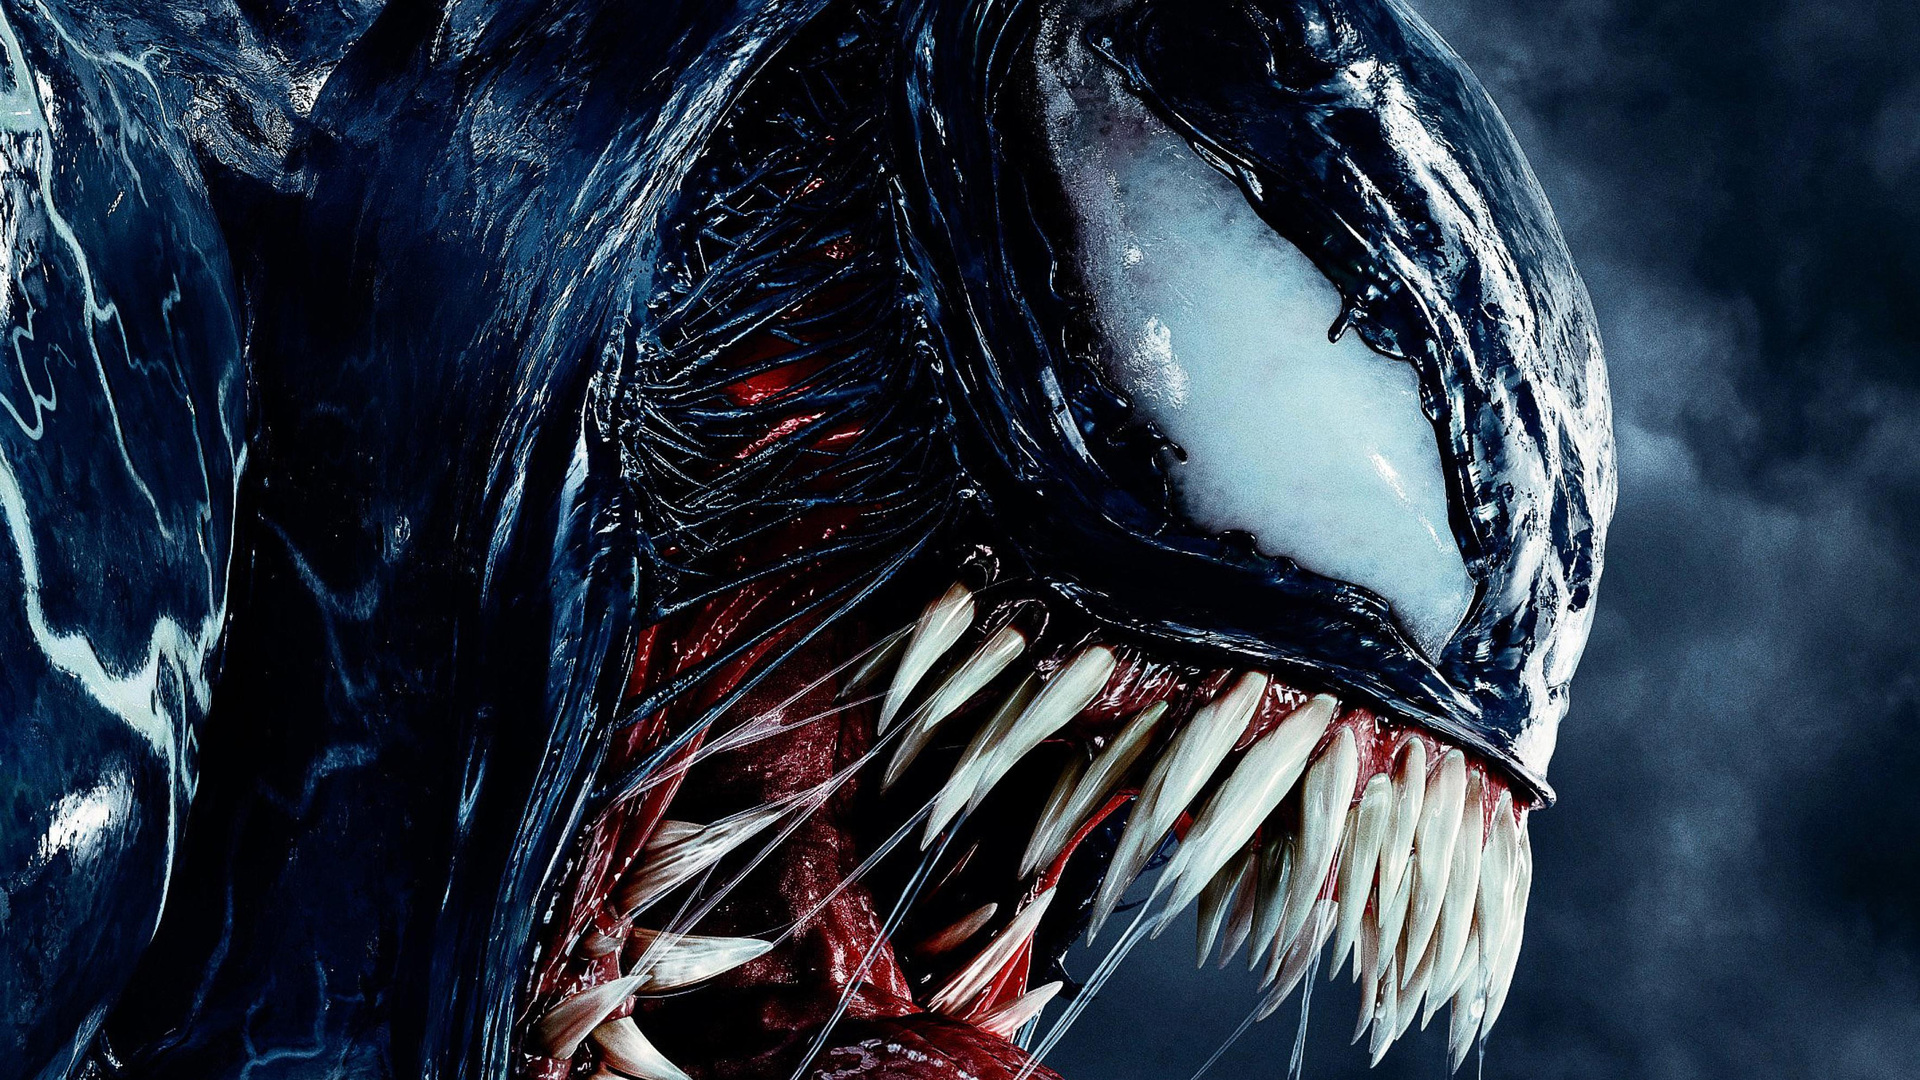 Venom Wallpapers Pictures Images: 1920x1080 Venom Movie Japanese Poster Laptop Full HD 1080P